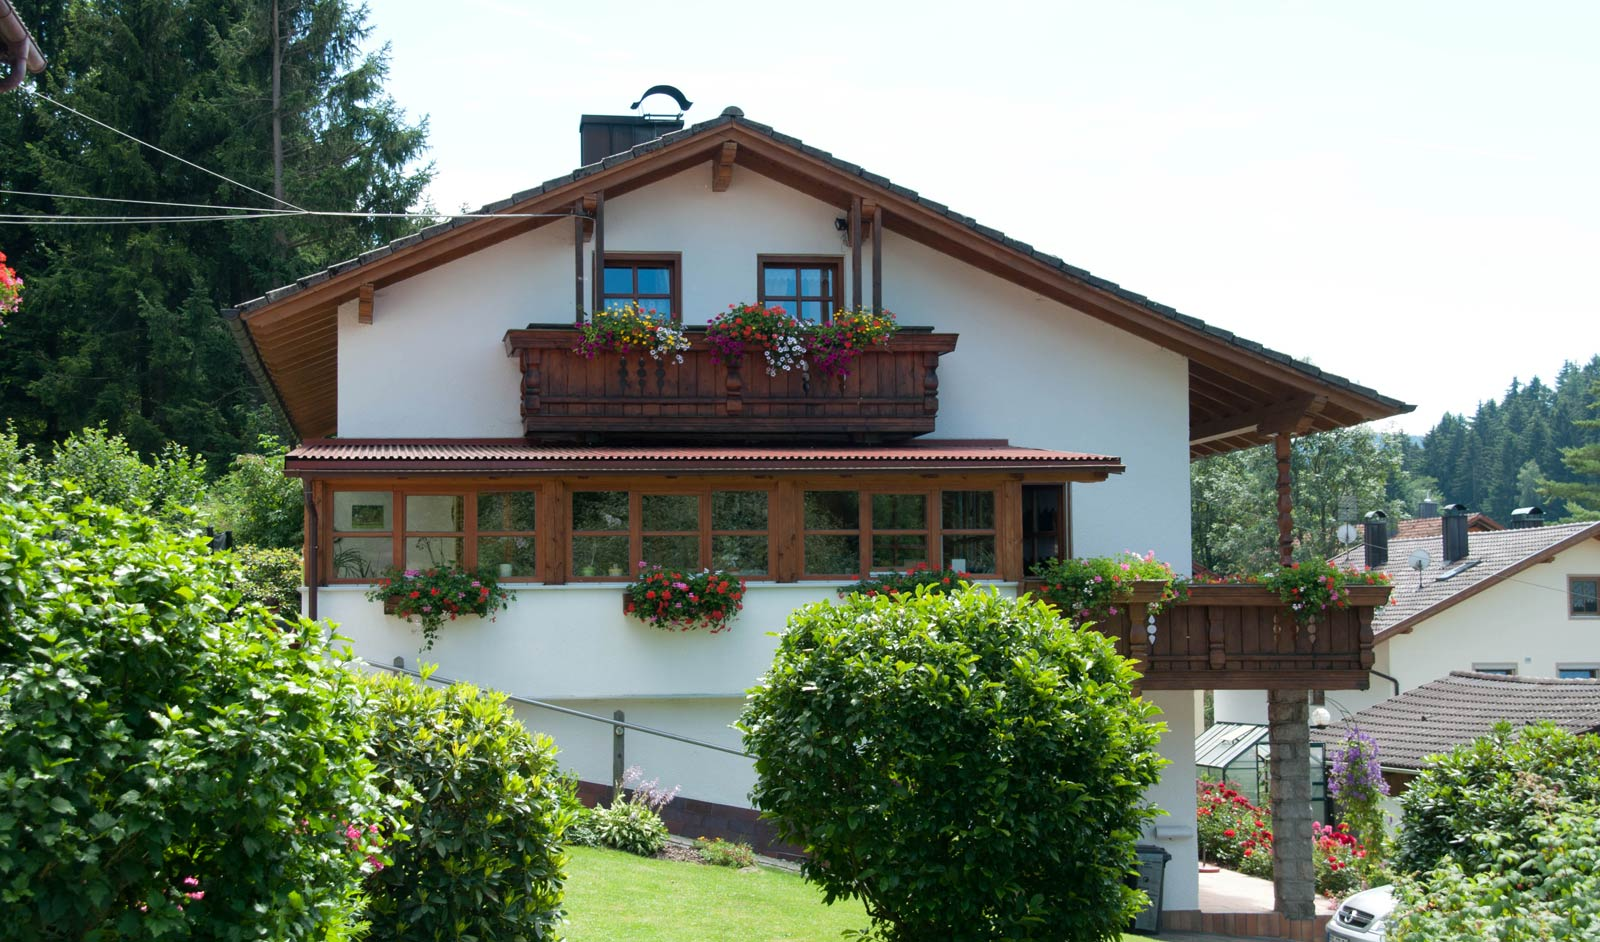 Waldpension in Kollnburg Bayerischer Wald